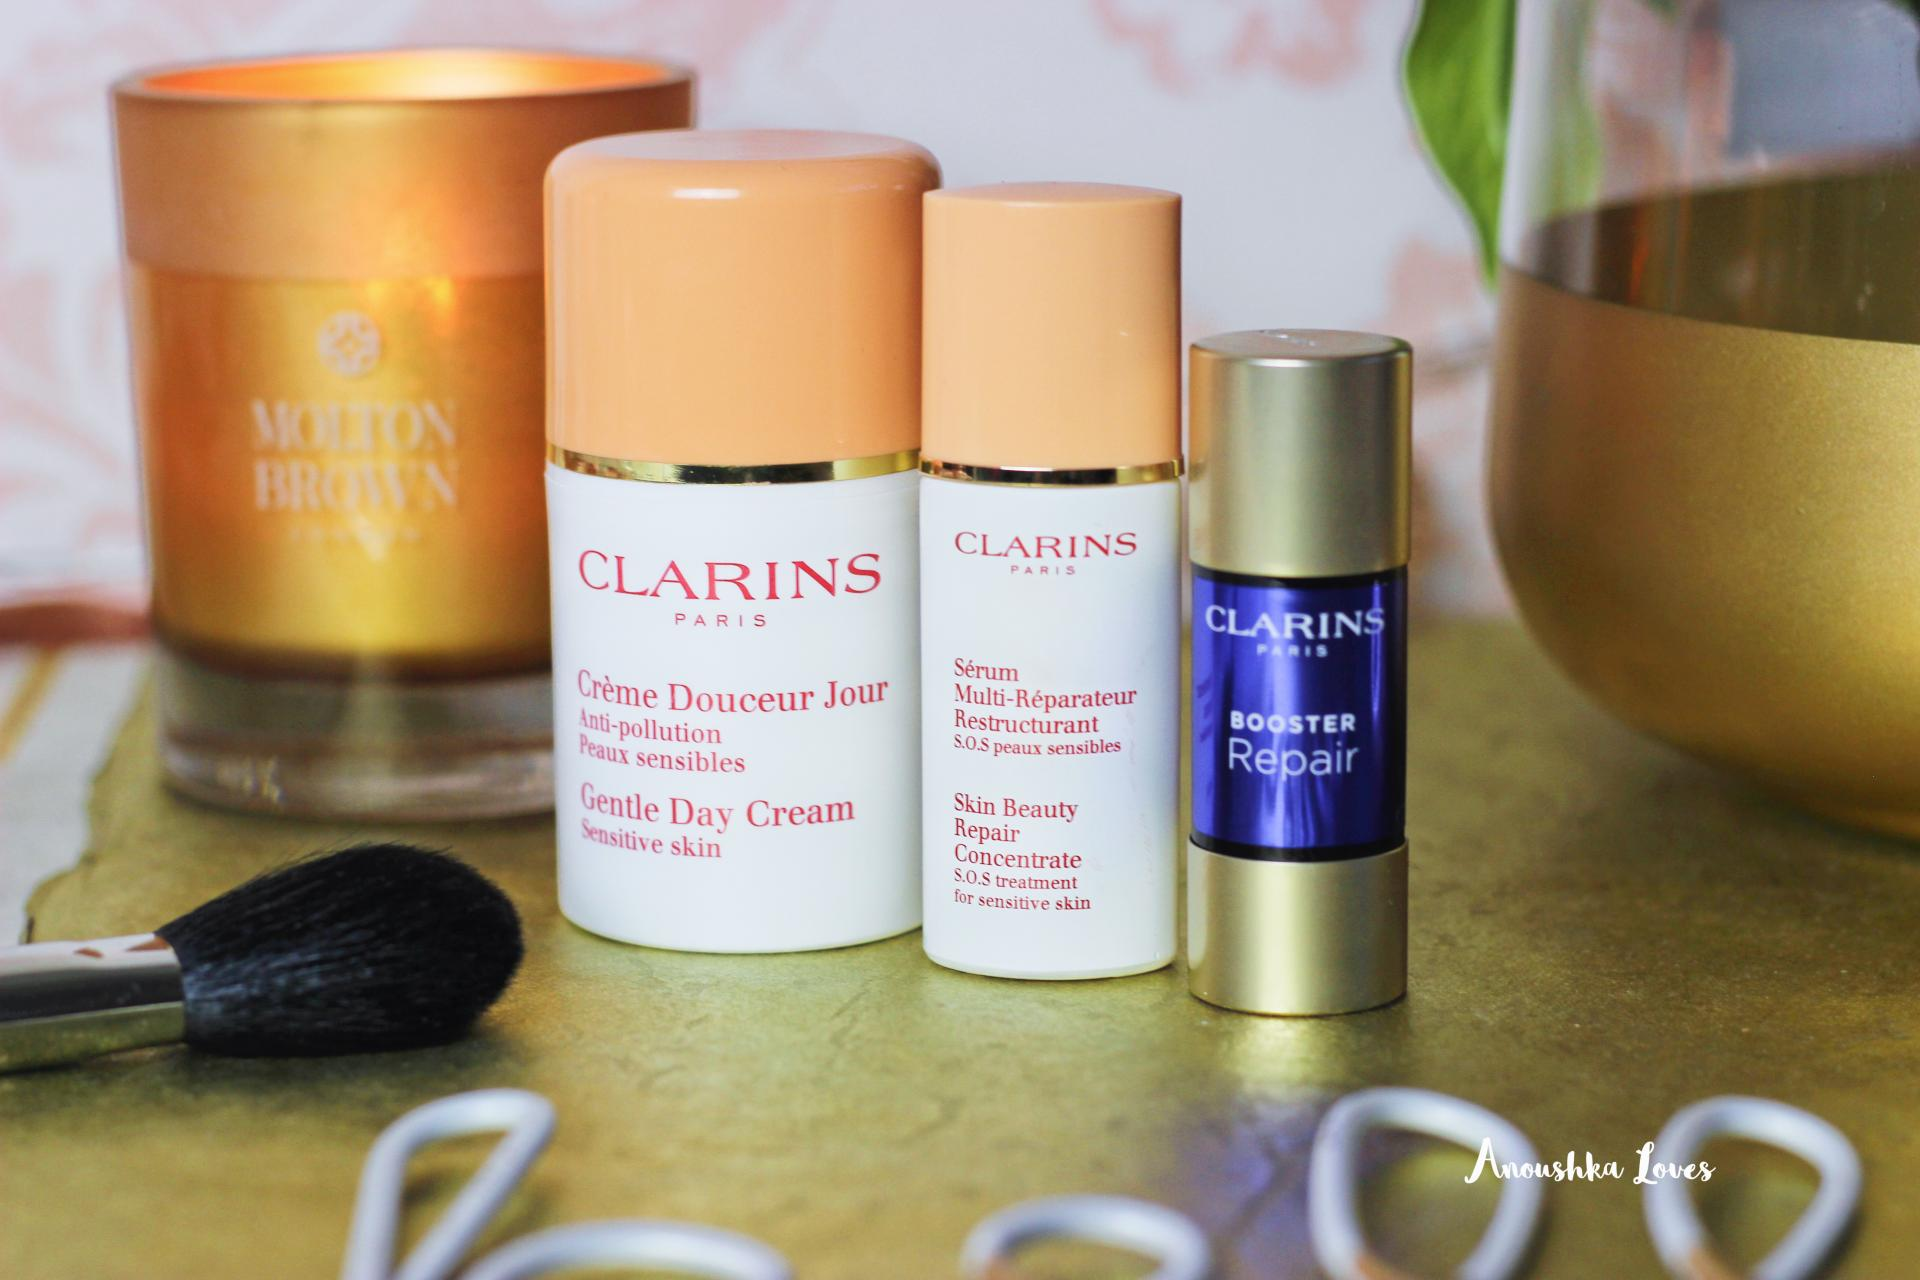 Back to Basics with Clarins